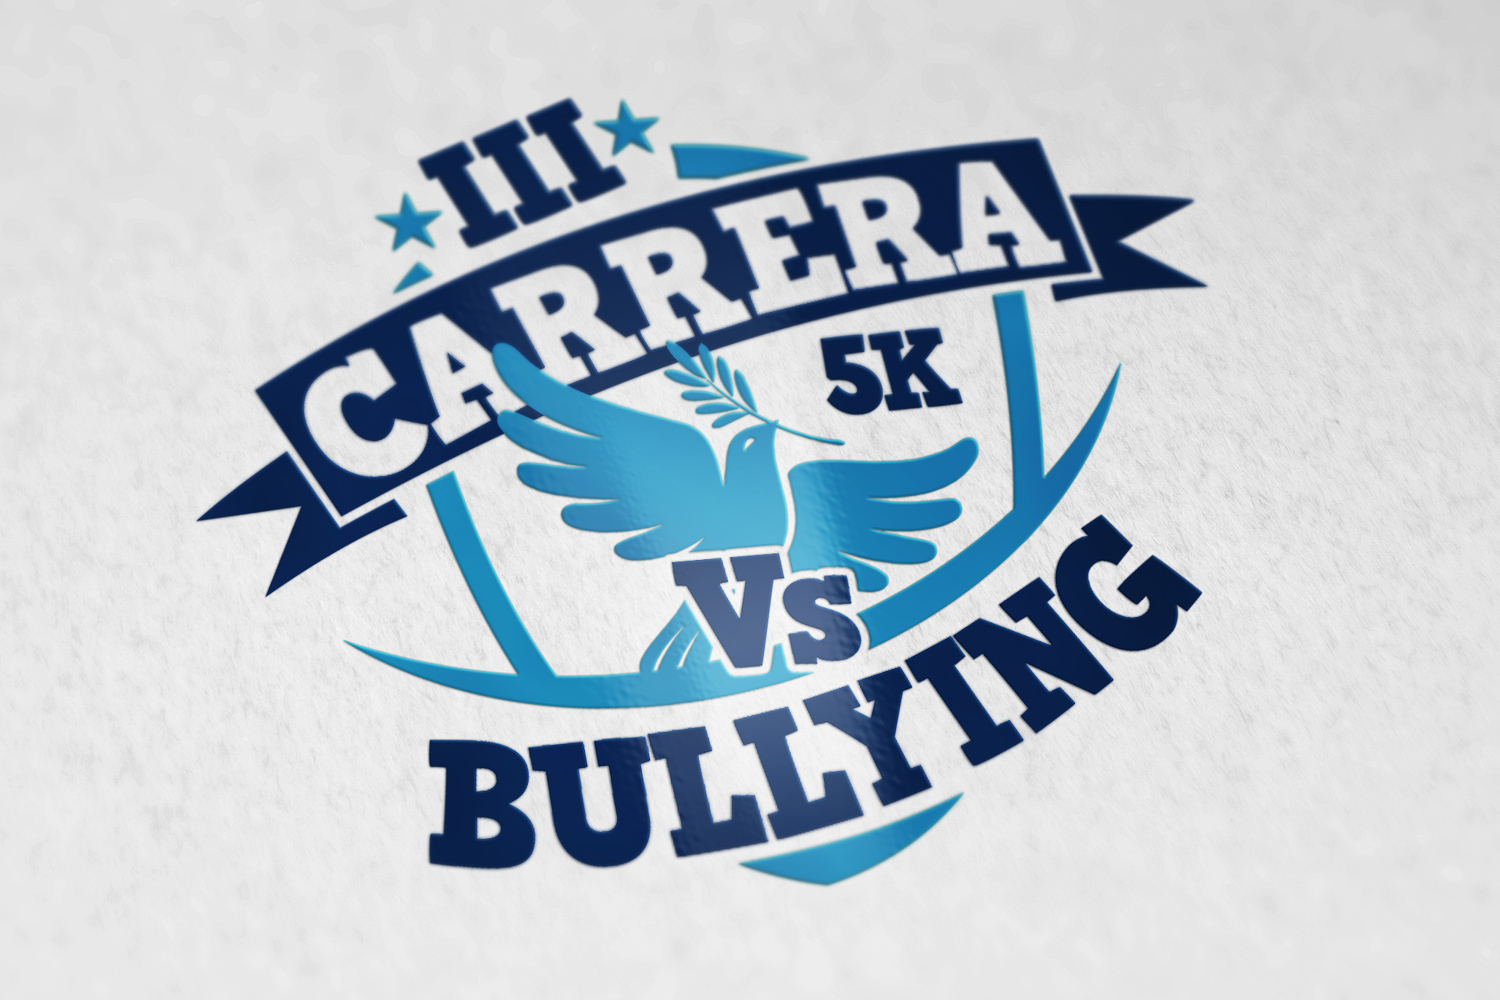 Carrera vs bullying claussell publicidad for Carrera de interiorismo